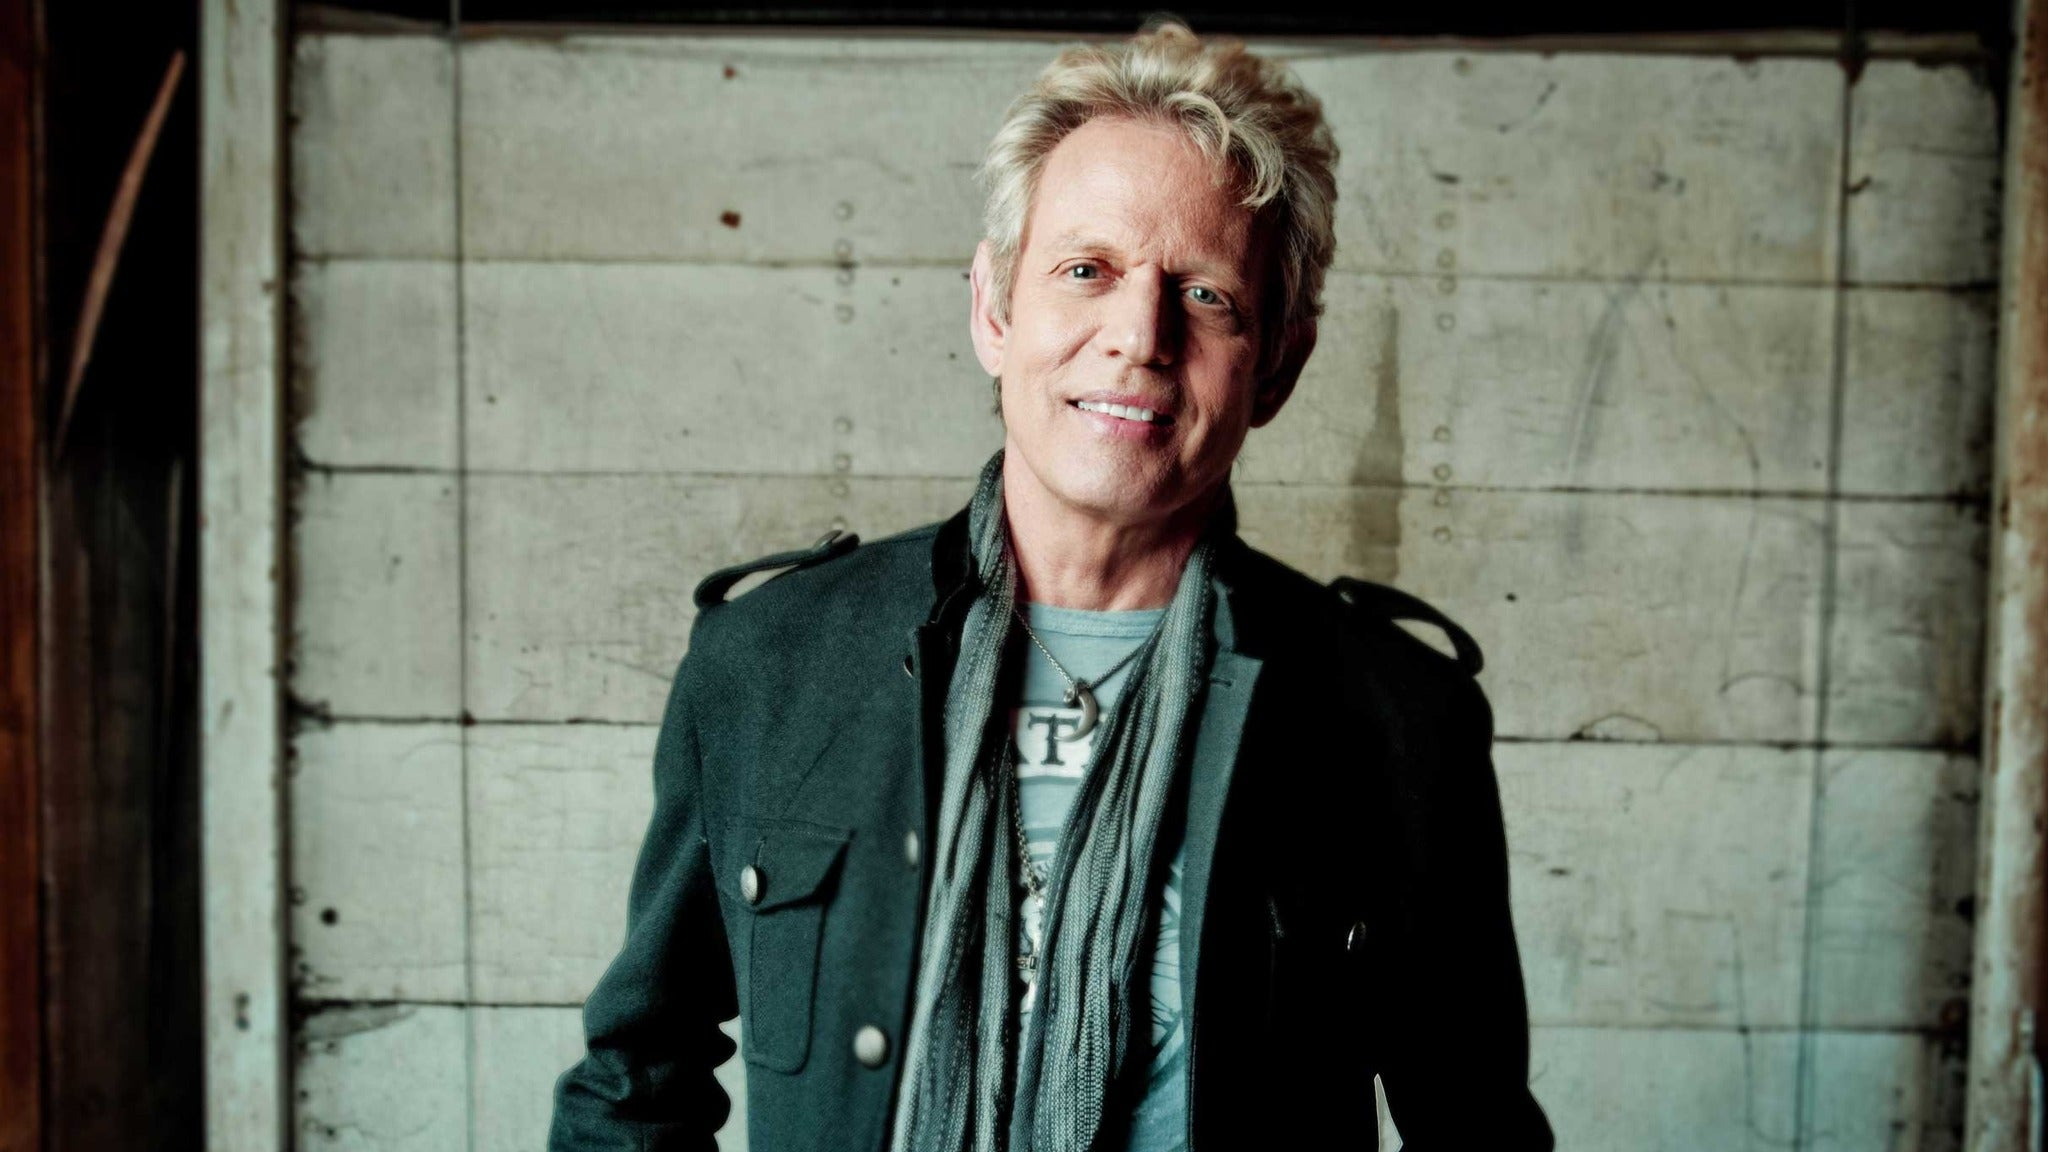 Don Felder at Chandler Arts Center